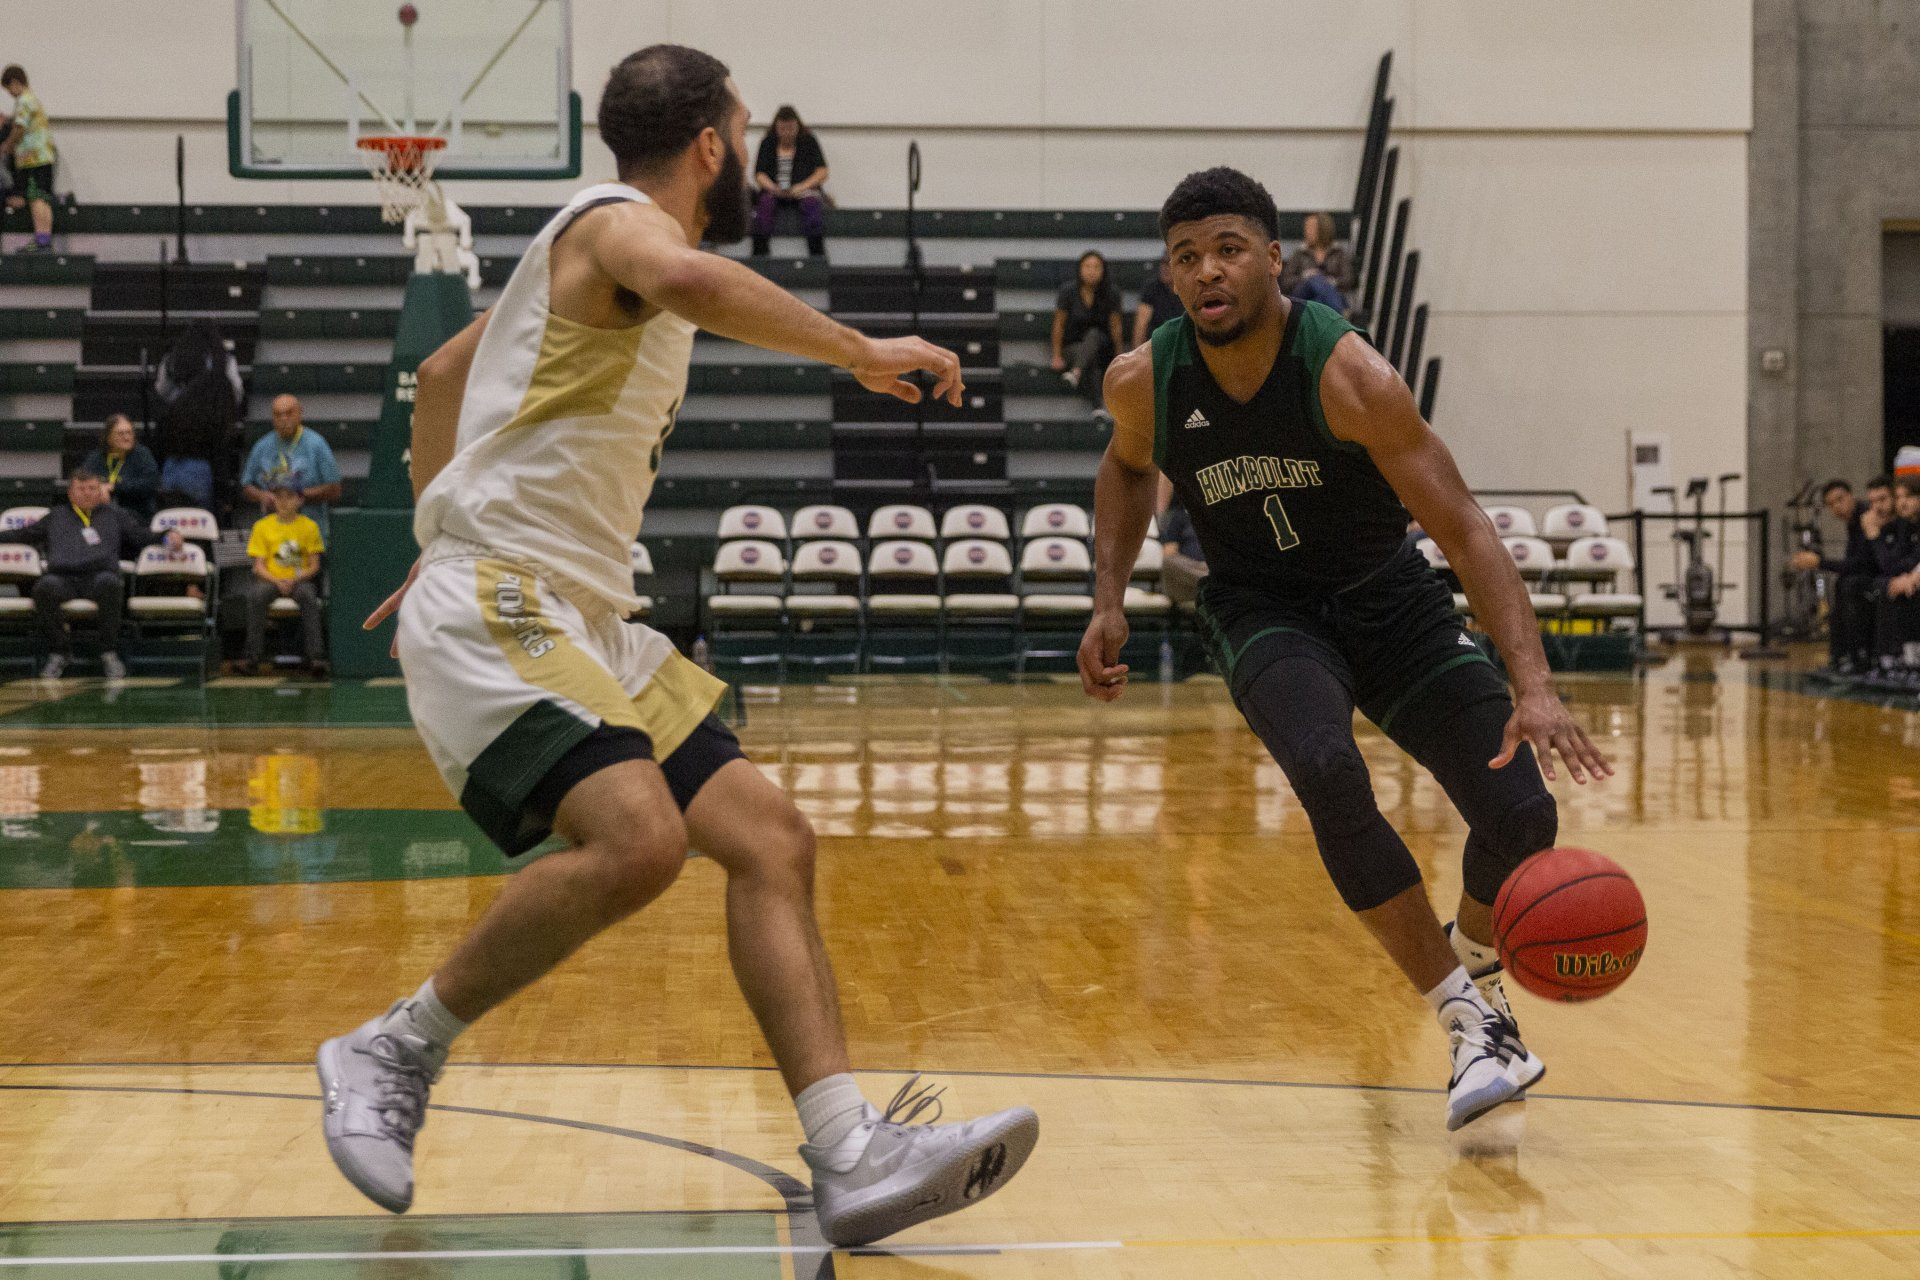 Humboldt State senior Rob Lewis drives the ball up the court during the first half of the Jacks' game against Pacific Union at Lumberjack Arena on Nov. 16. | Photo by Thomas Lal